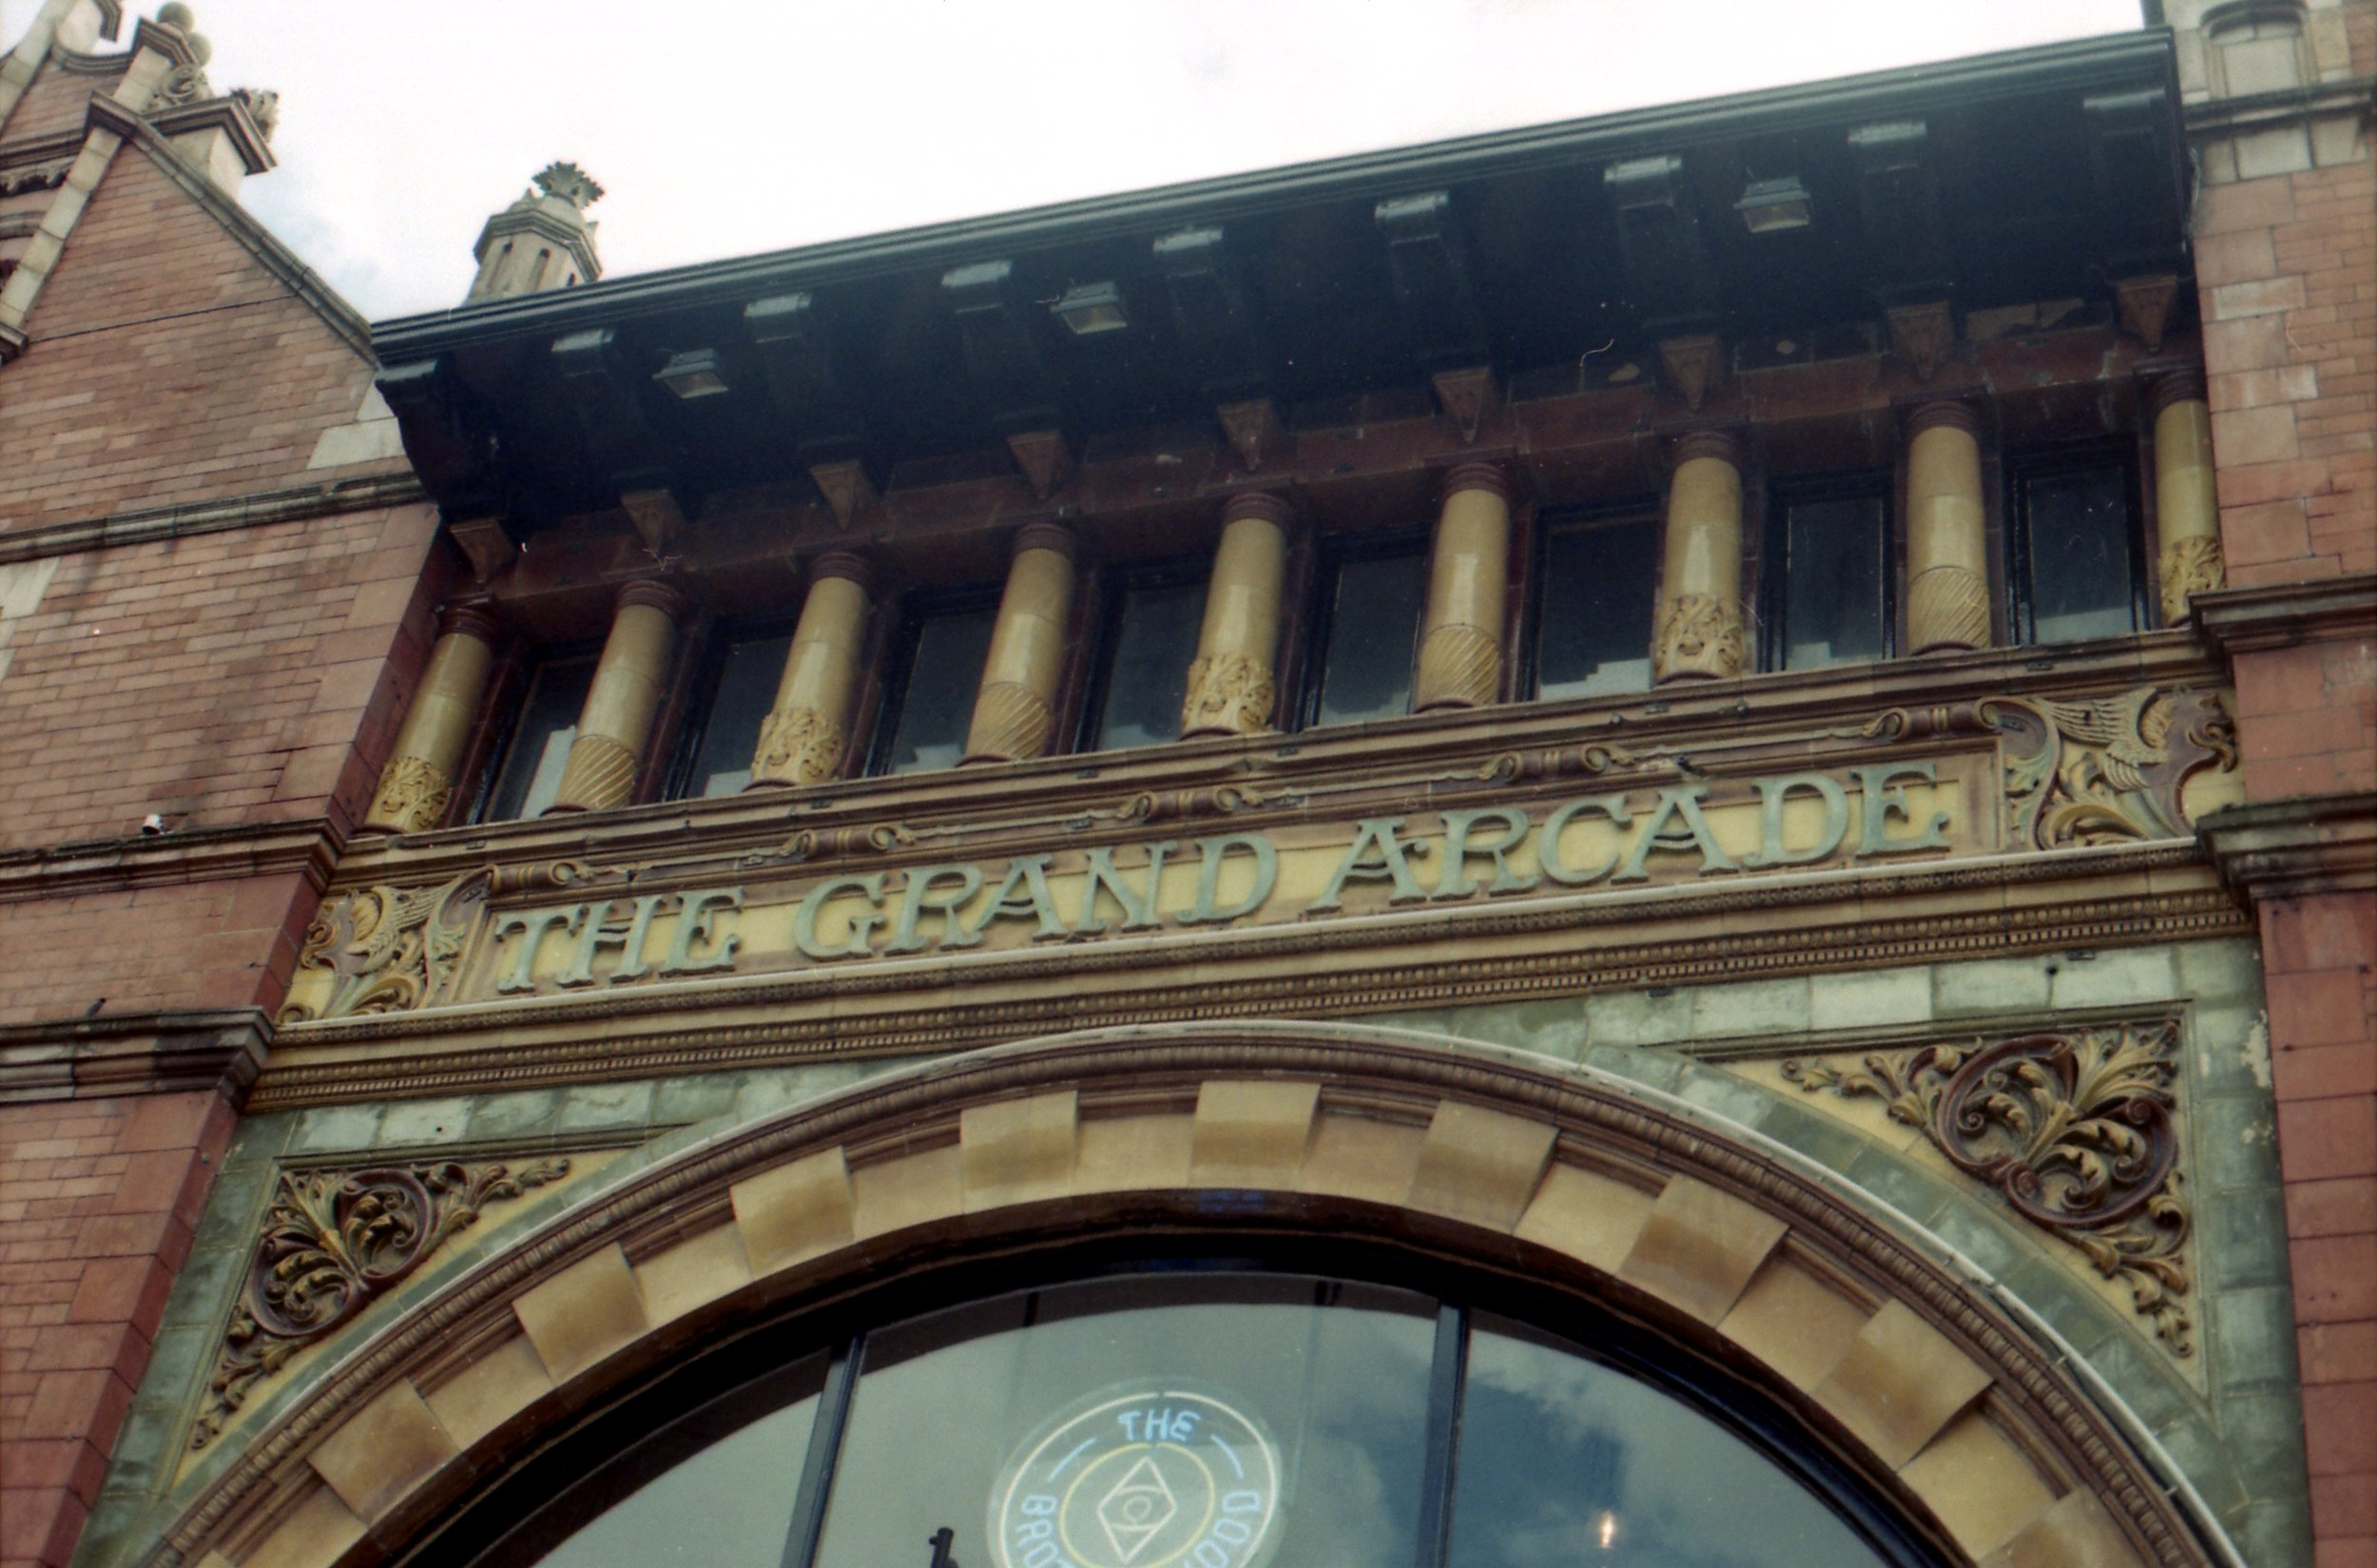 258/366 - It would be so easy to do a 366 project just on the architecture in Leeds - there are so many amazing buildings and details... I've tried to keep a bit of variety in my photos though but this one made it in